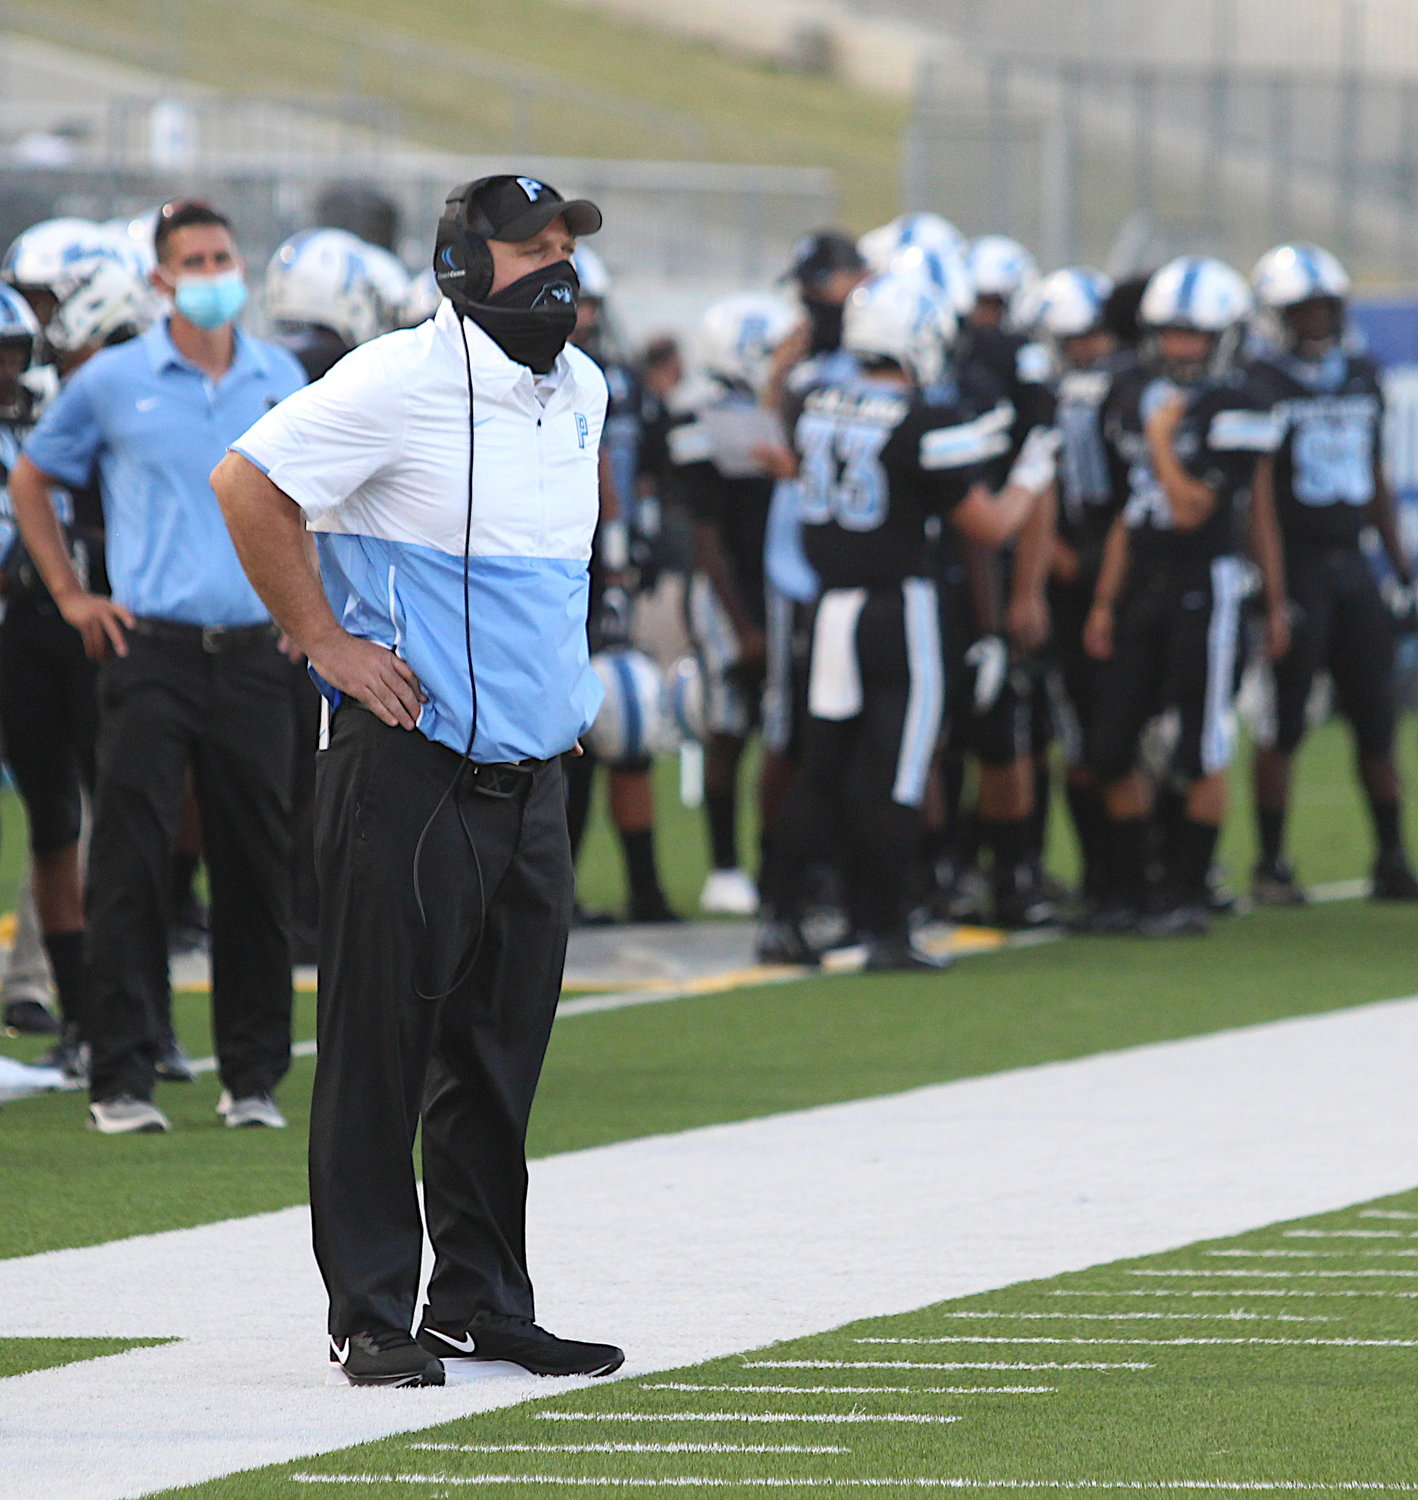 Paetow coach B.J. Gotte and the Panthers suffered just their first loss of the season with a 28-10 setback to No. 5 state-ranked Richmond Foster on Saturday at Legacy Stadium and now stands 5-1. However, because of the loss to Foster, the Panthers will play Angleton next Saturday at 1 p.m. at Angleton in a playoff play-in game.